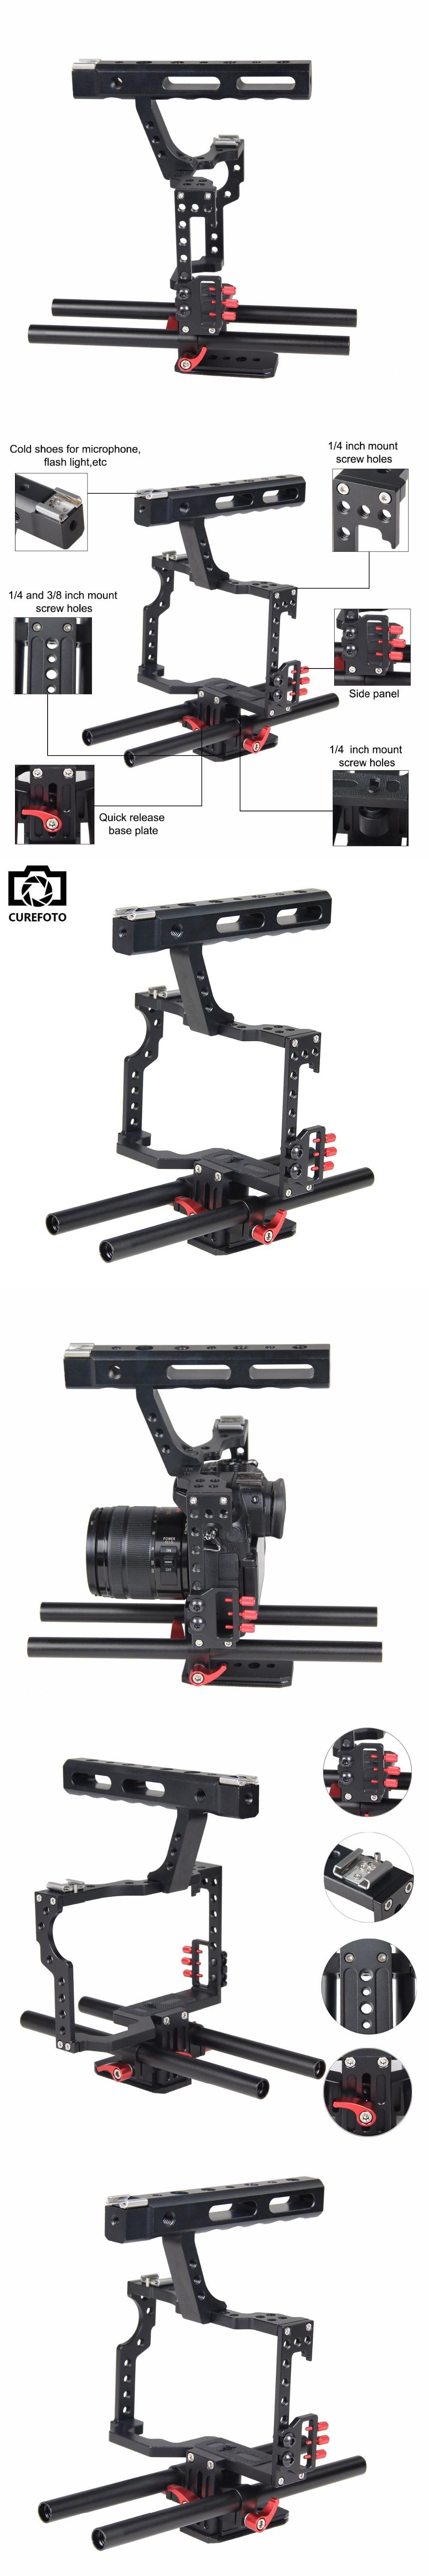 Professional Aluminum DSLR Camera Video Cage With 15mm Rod System Rig For Sony Alpha A7 A7II